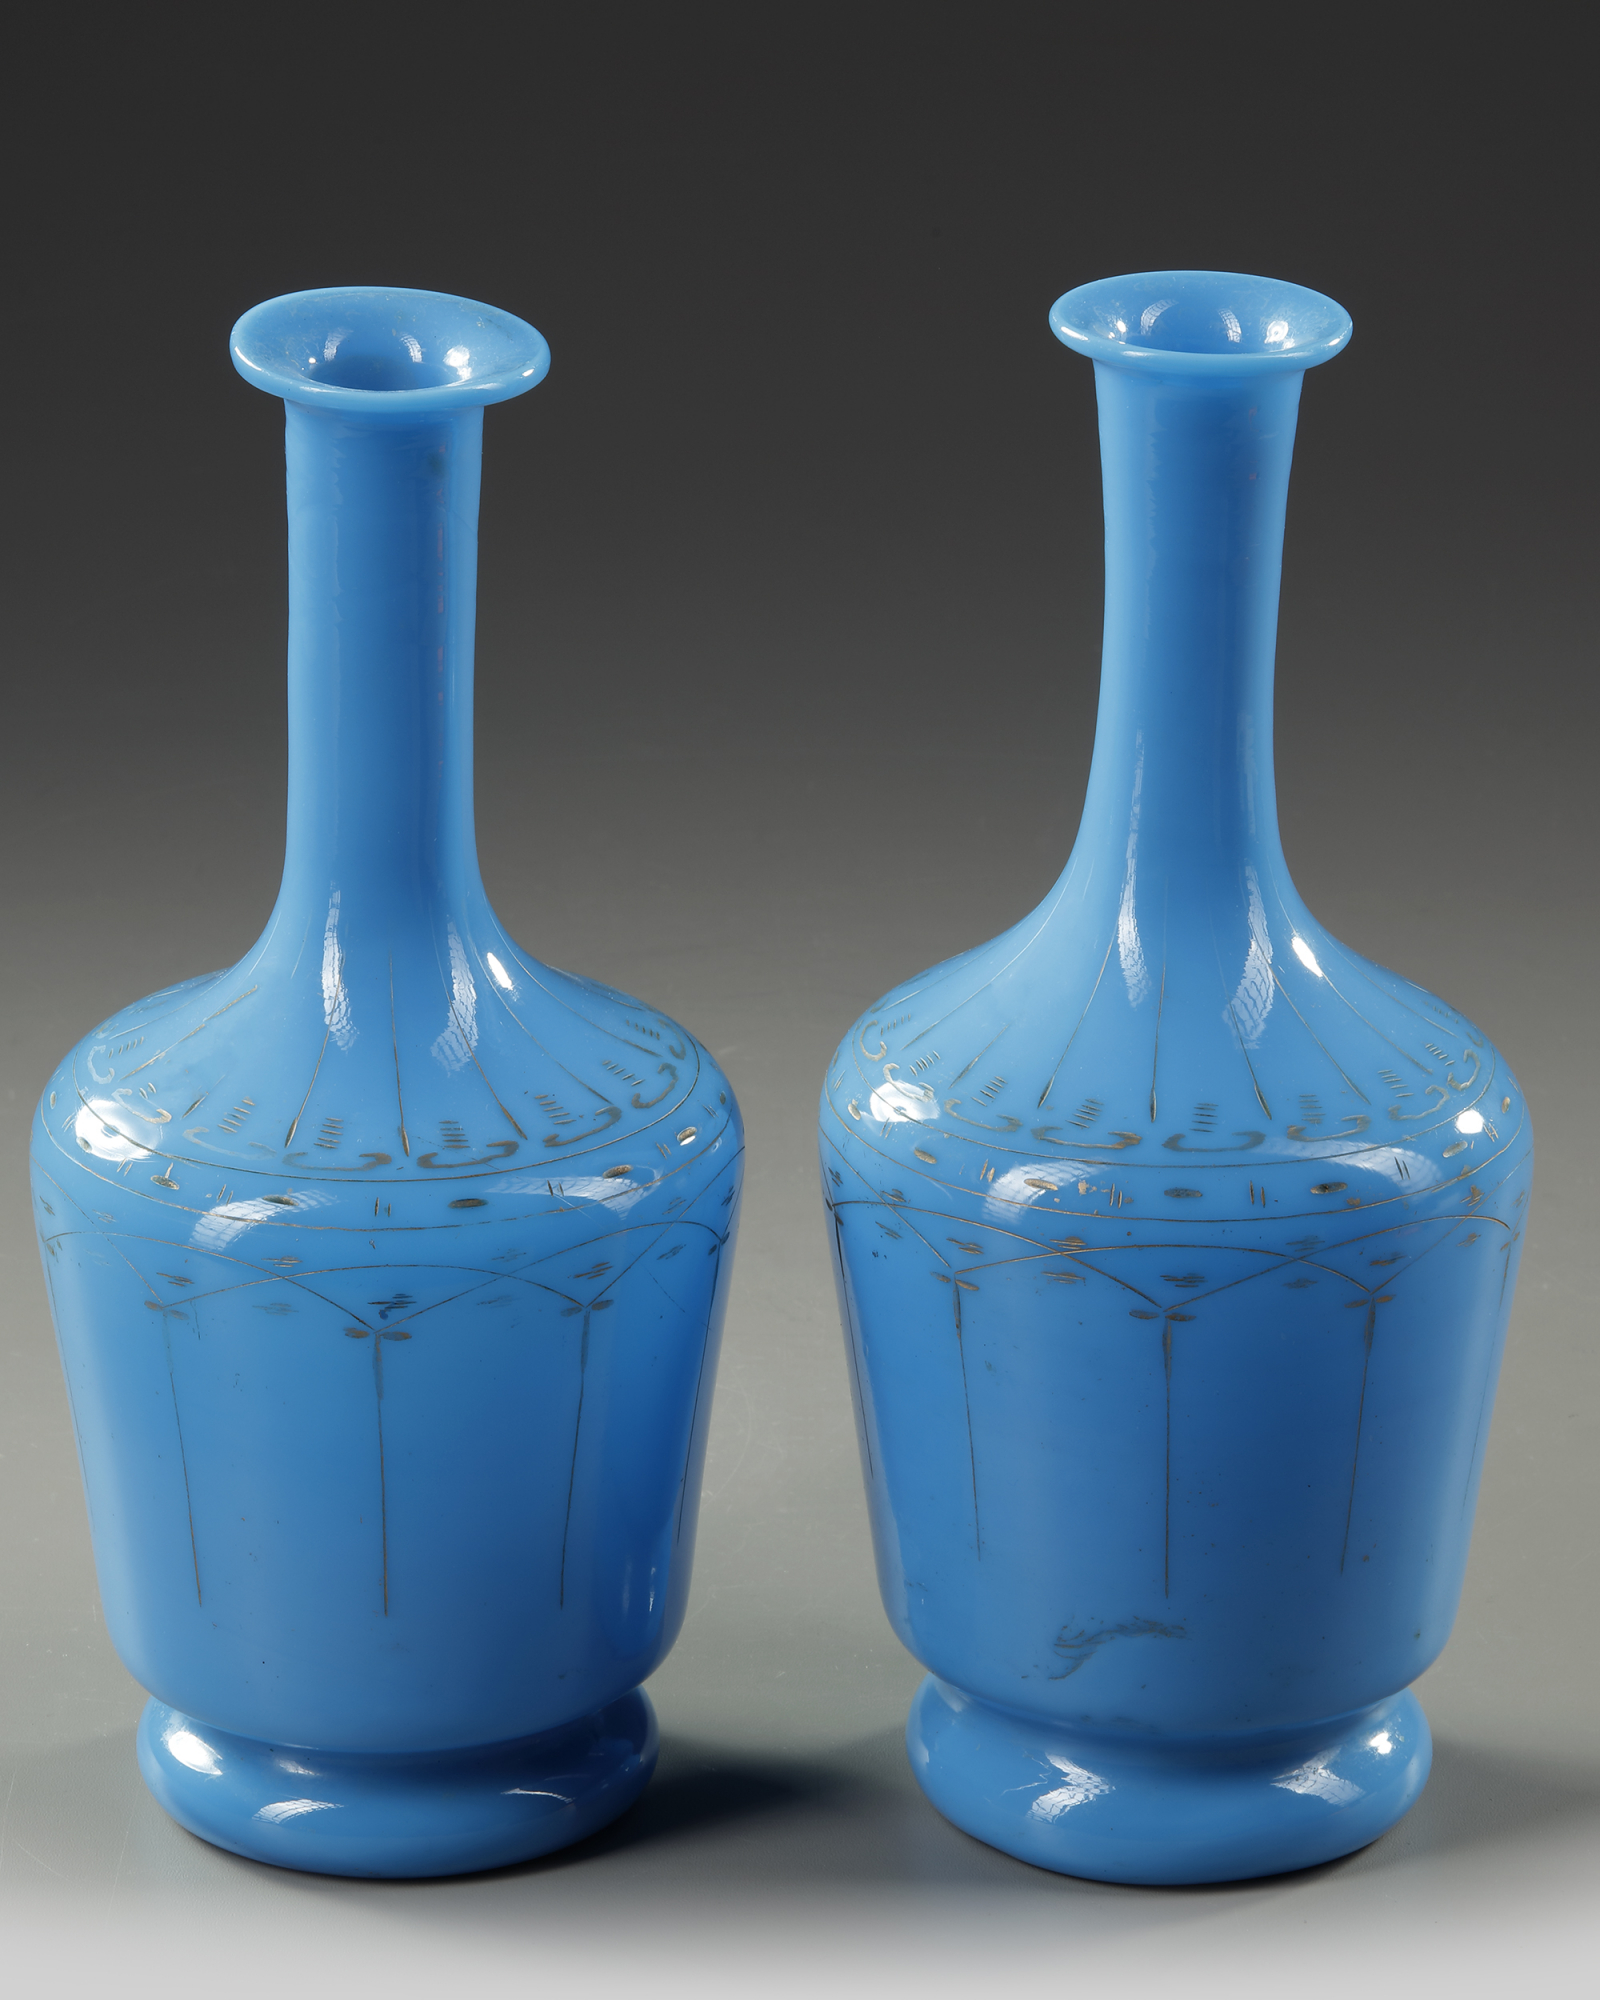 A PAIR OF OPALINE CARAFES, LATE 19TH CENTURY - Image 3 of 4